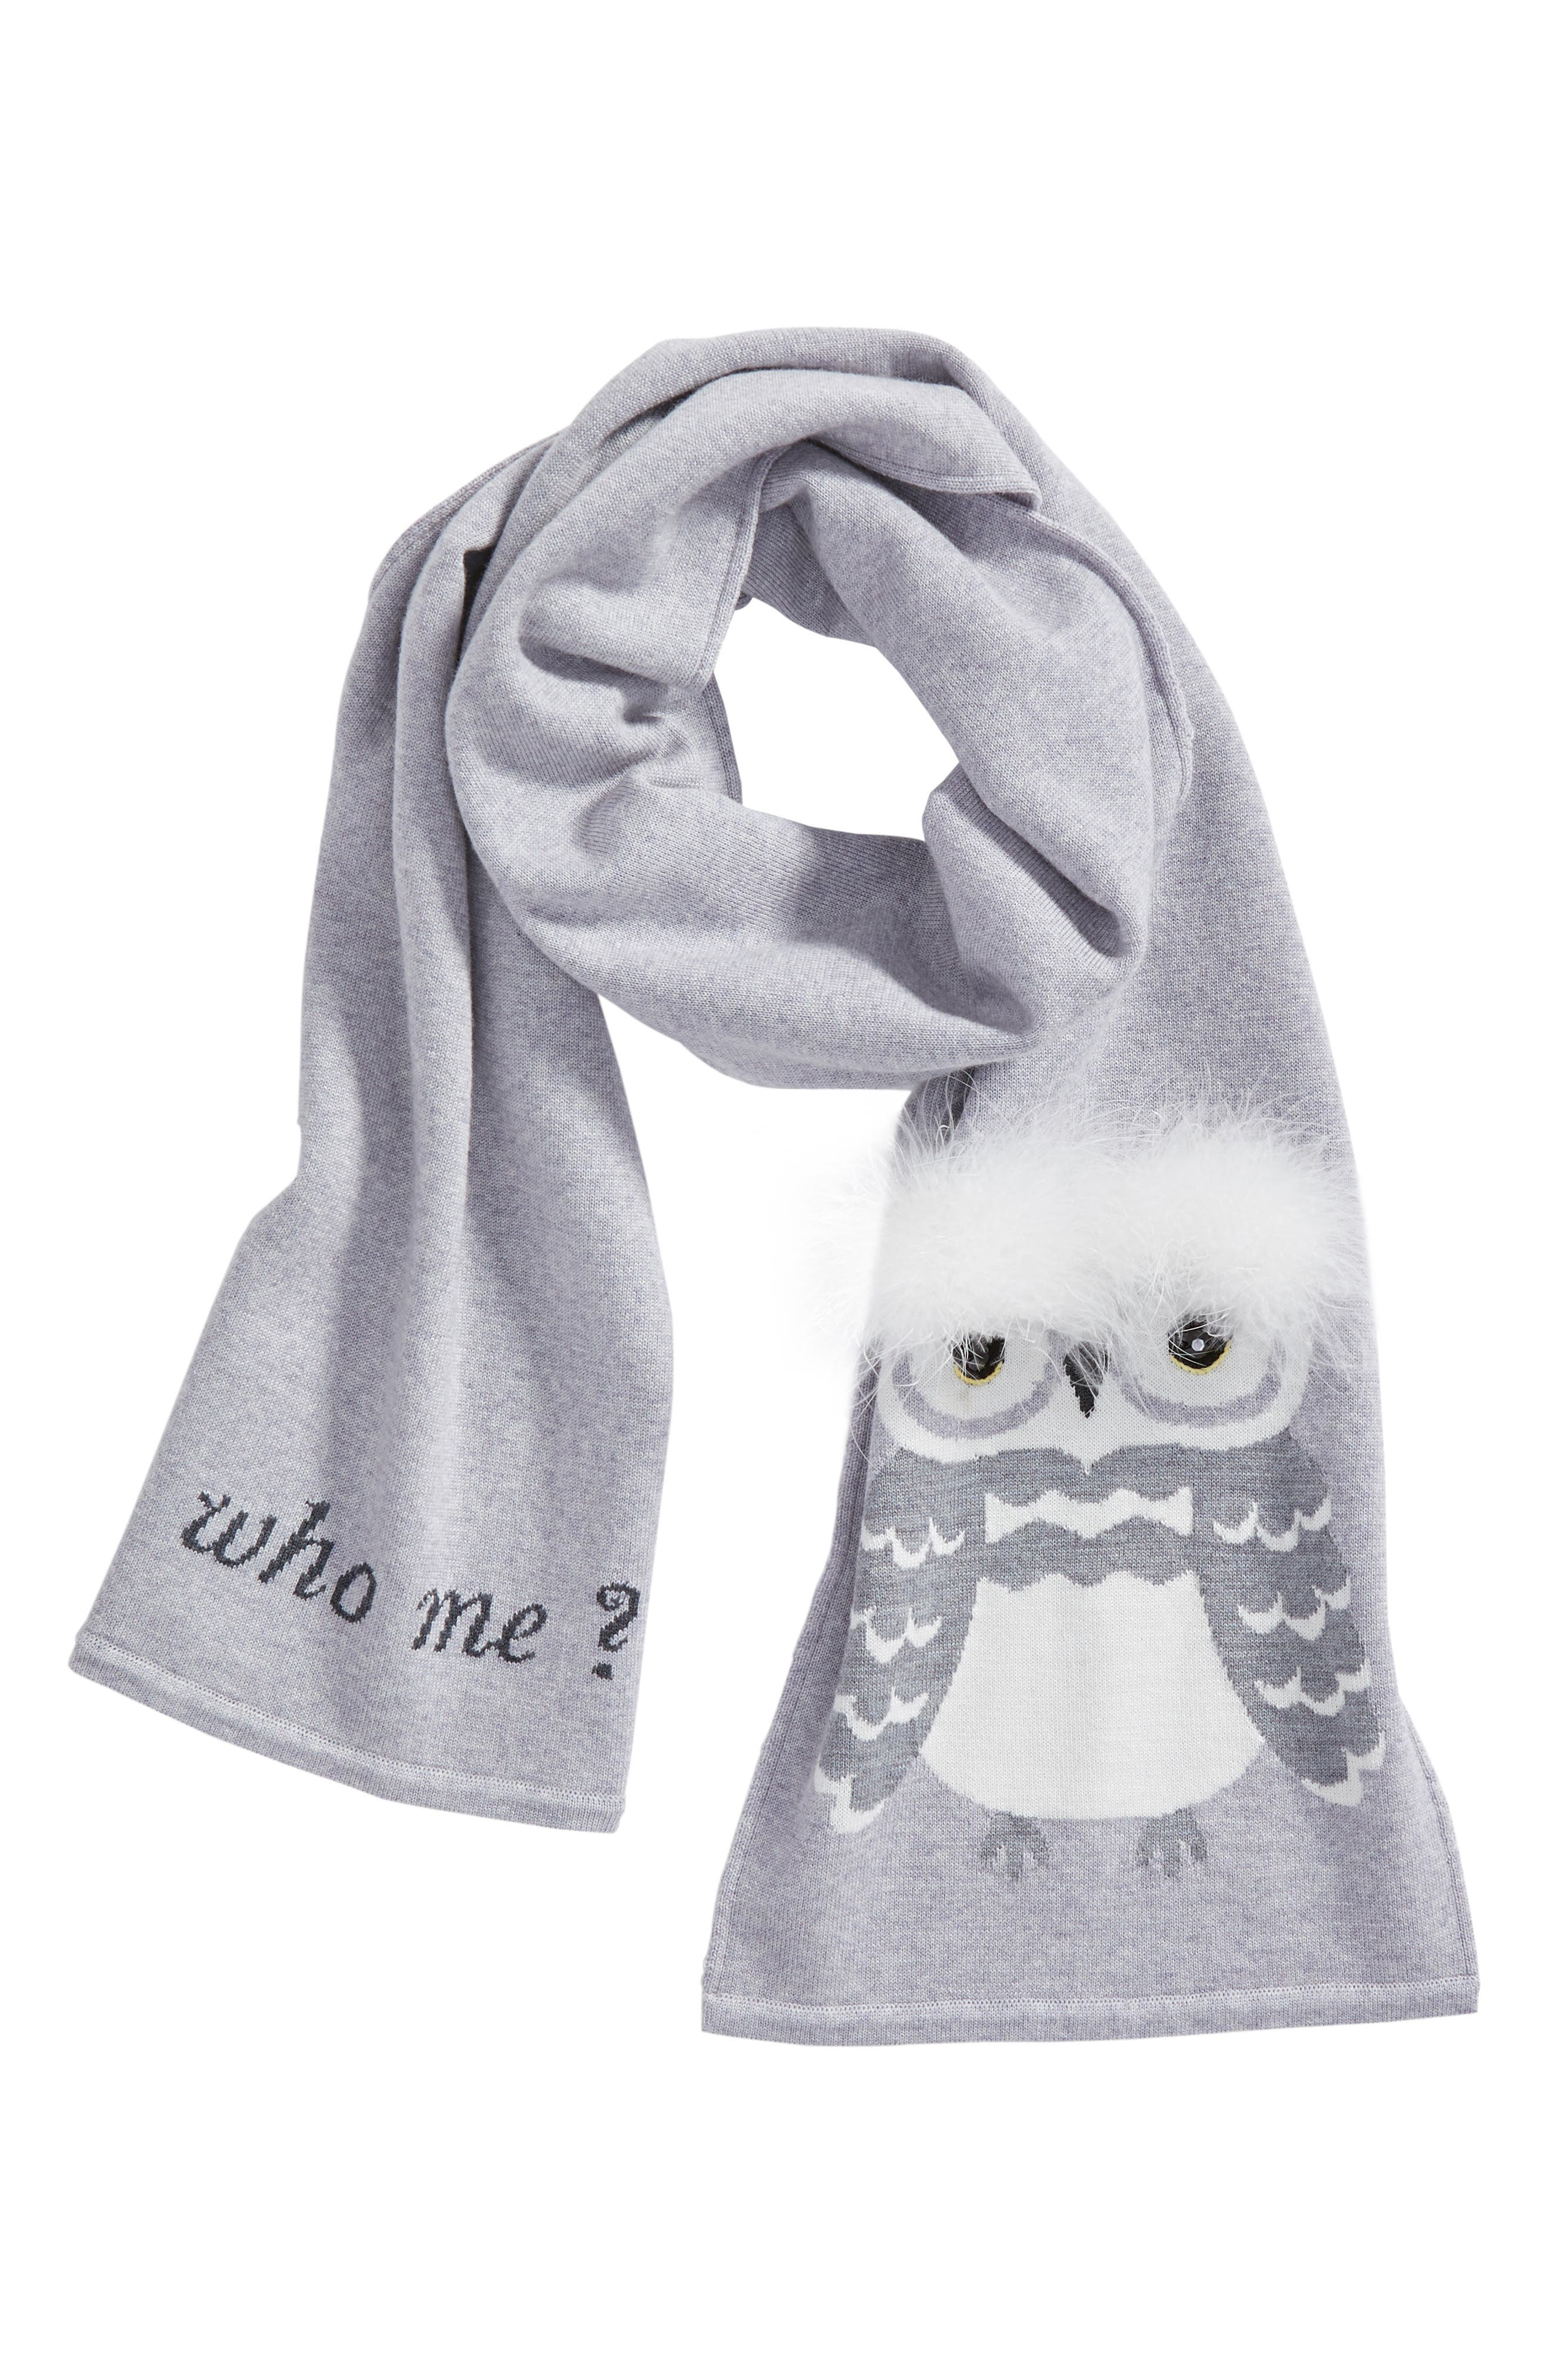 who me owl merino wool muffler,                             Alternate thumbnail 4, color,                             Heather Grey